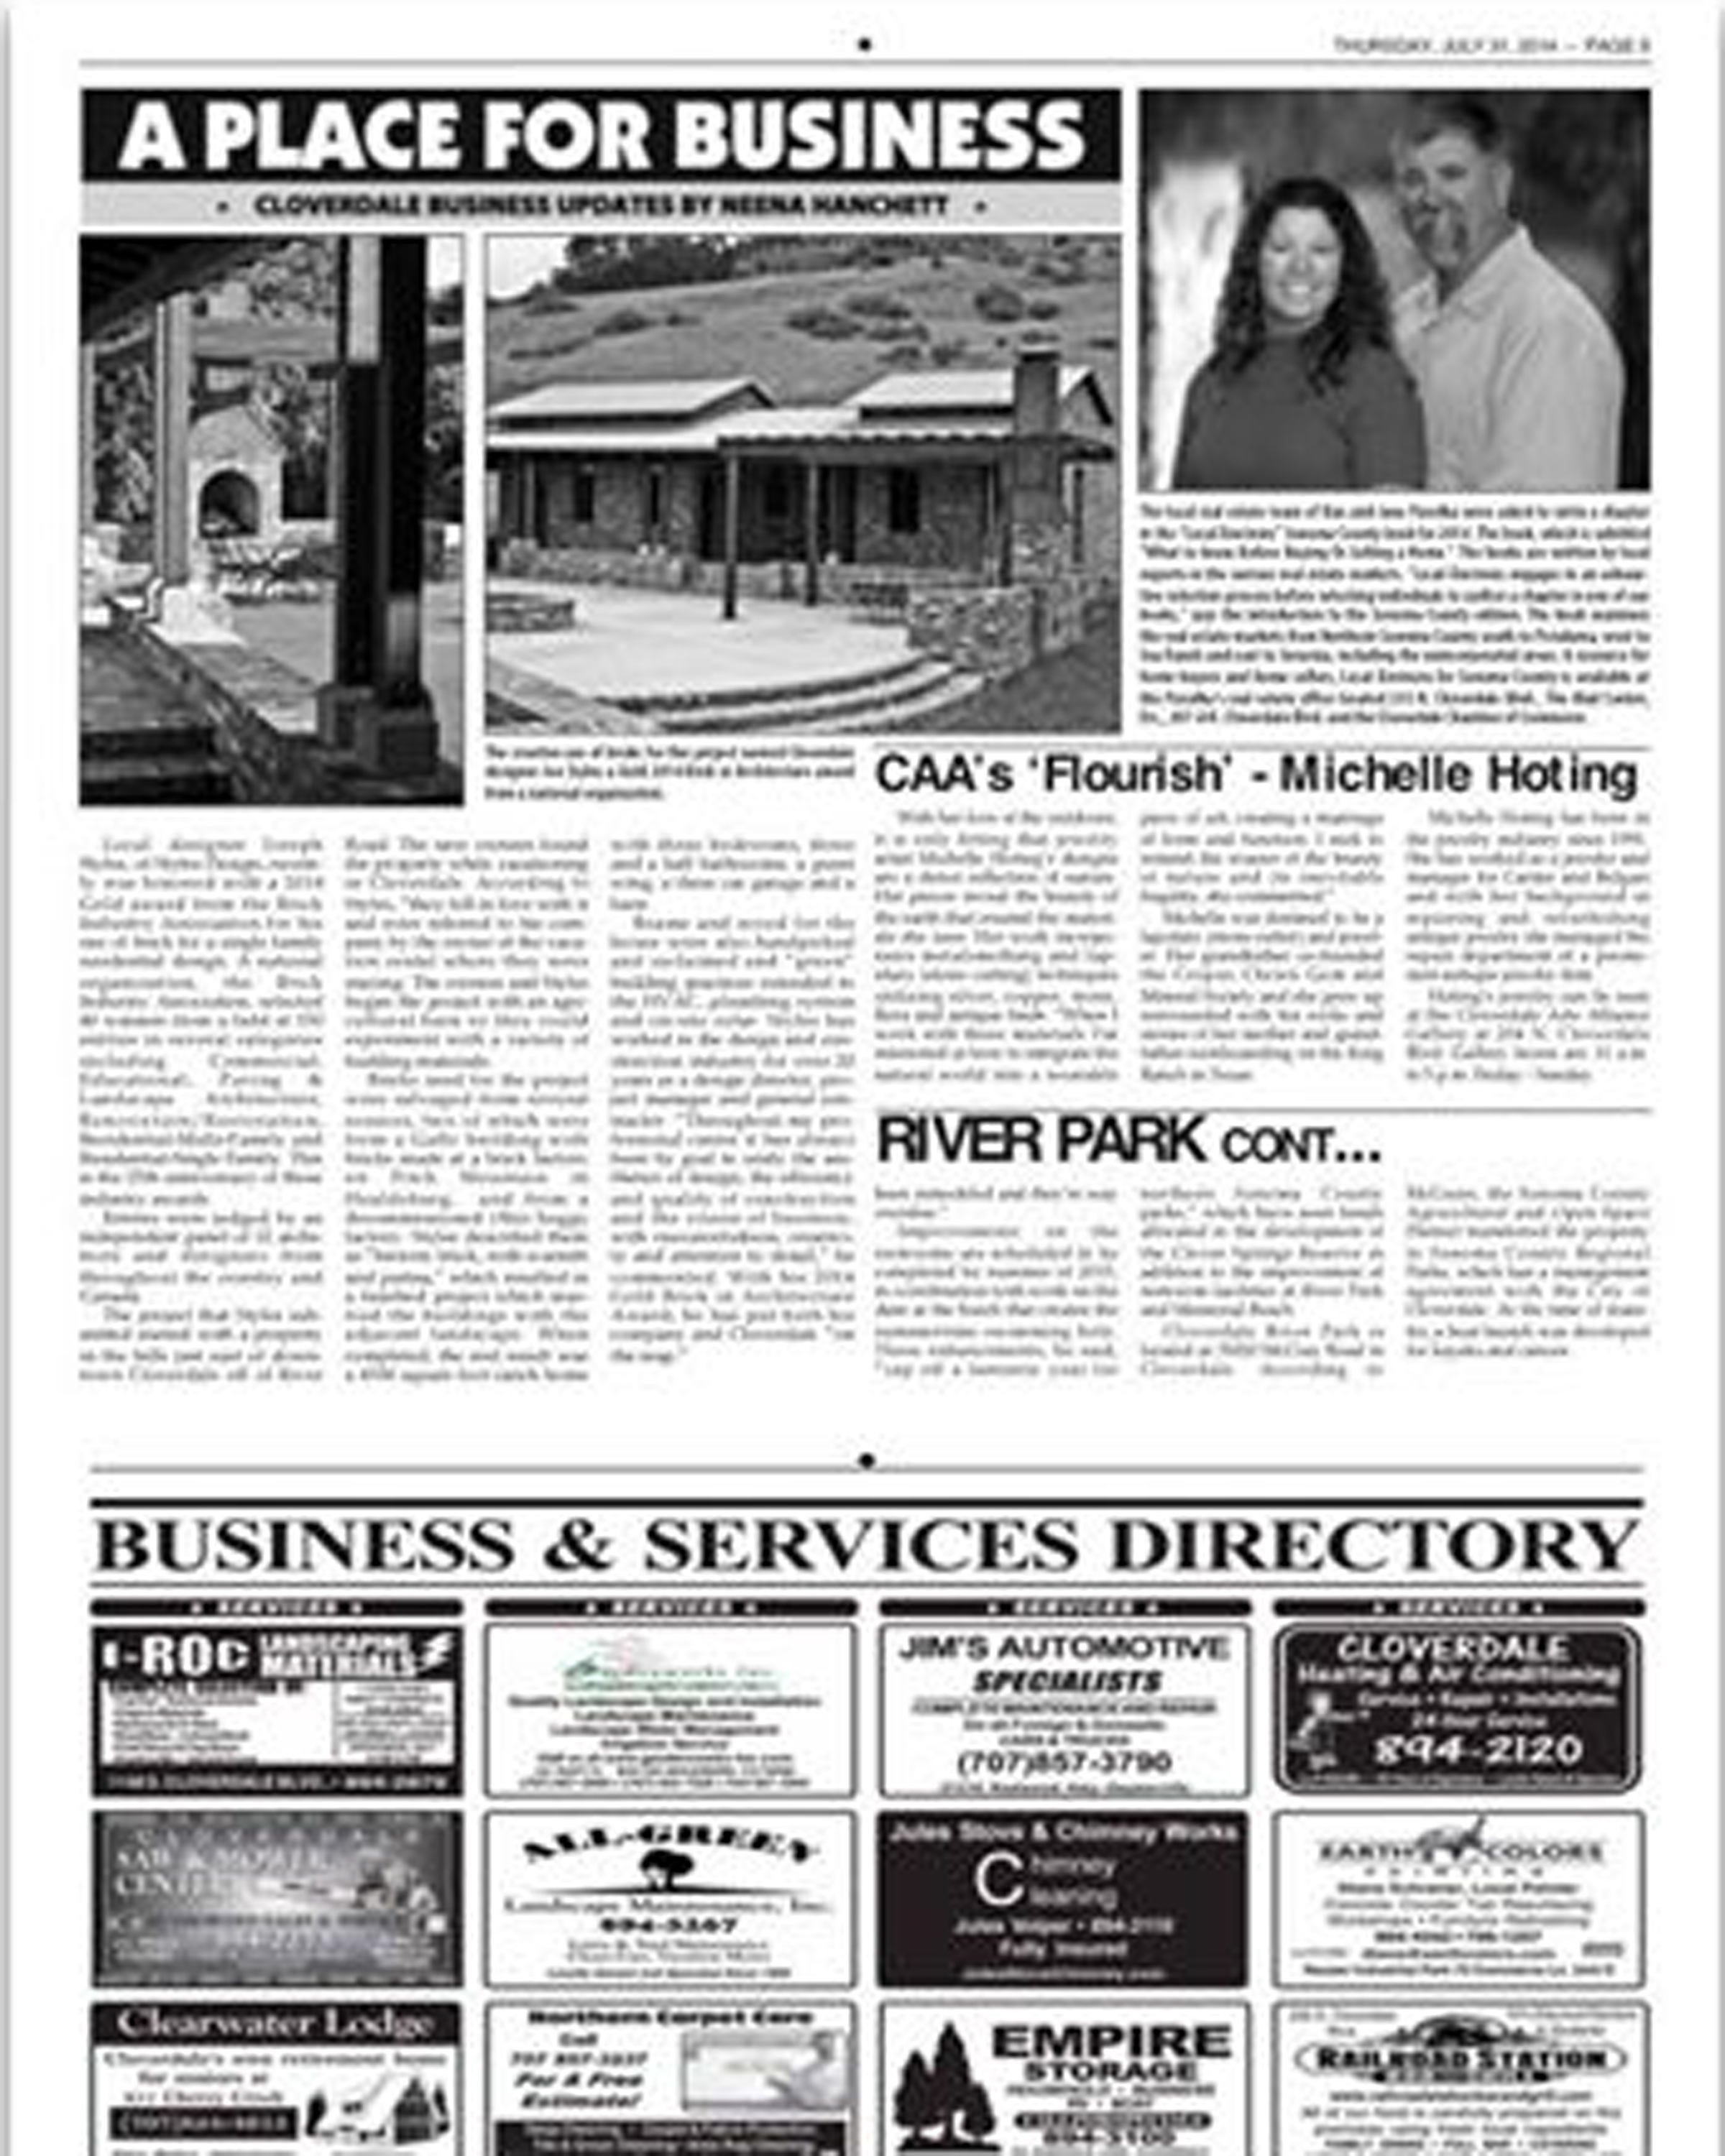 Cloverdale Reveille Newspaper on July 31 for the Flourish Art Show at The Cloverdale Arts Alliance Gallery.